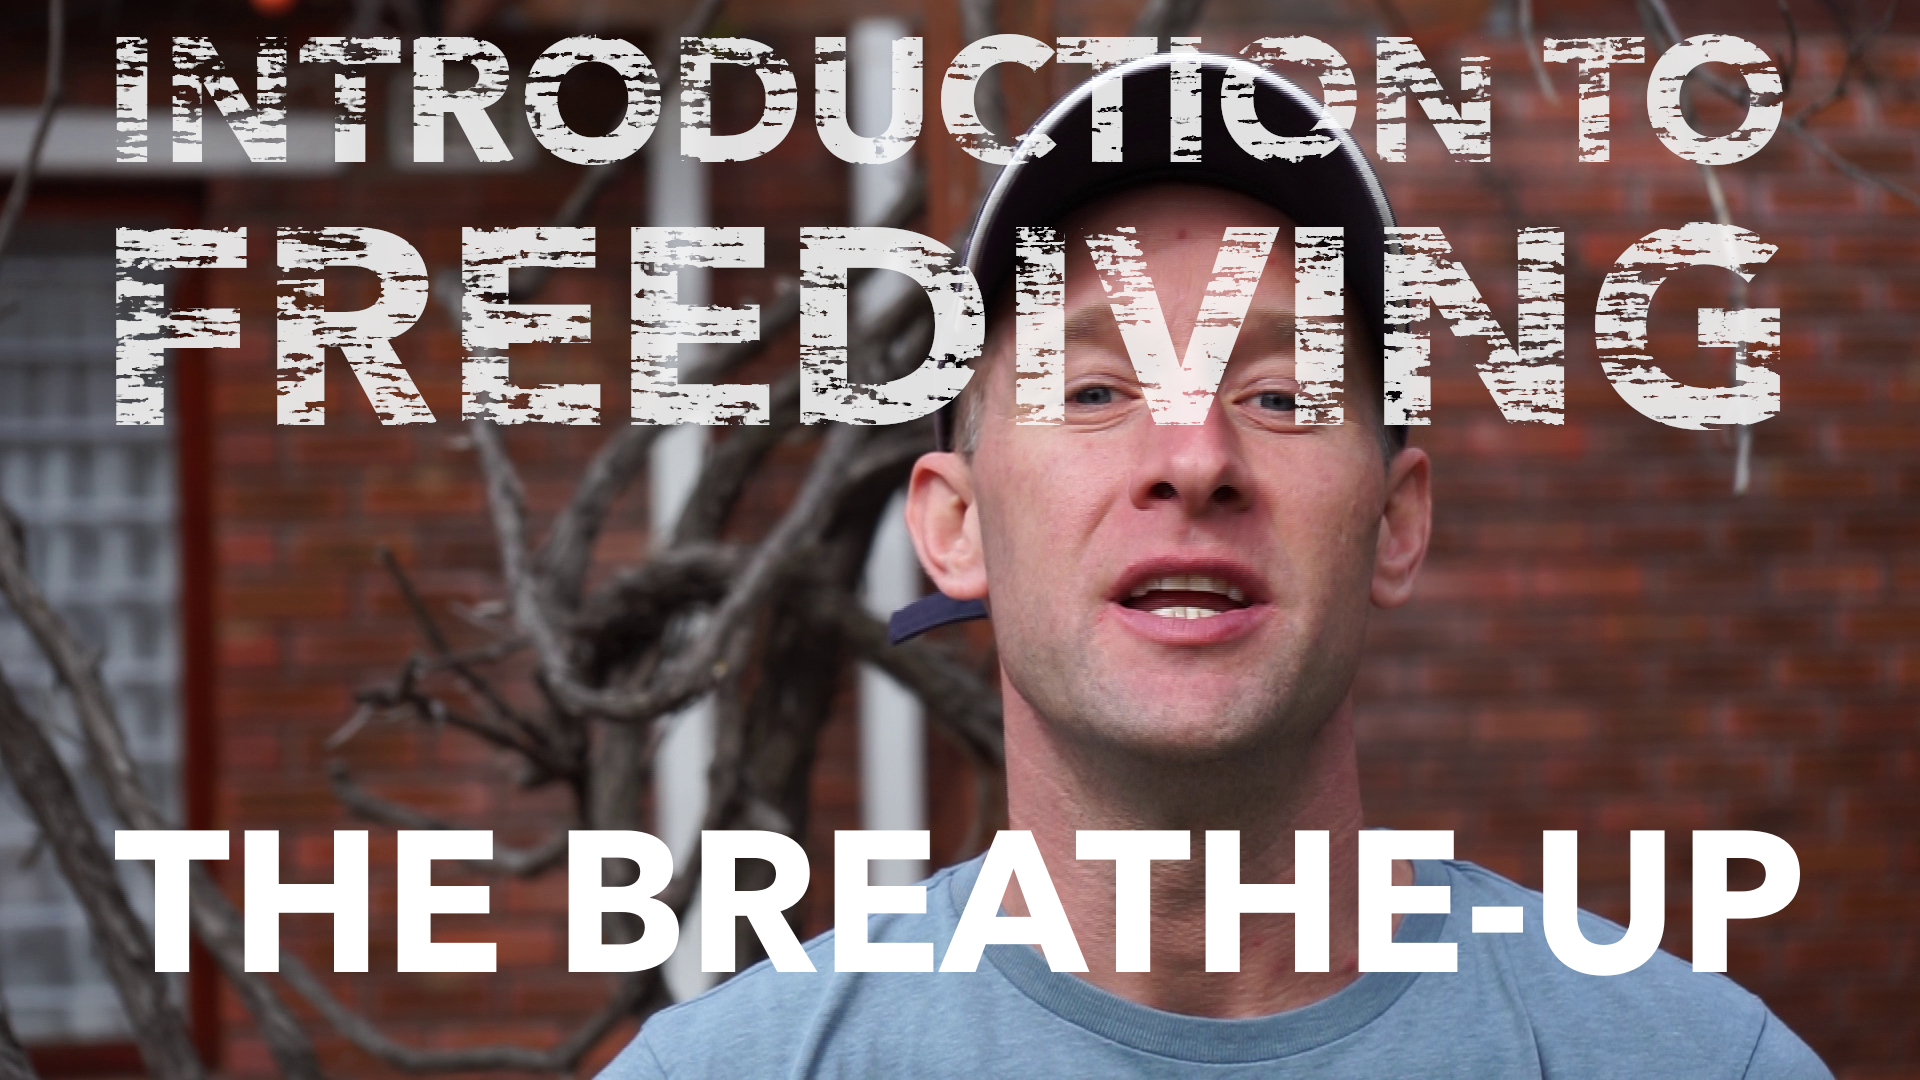 freediving video title image